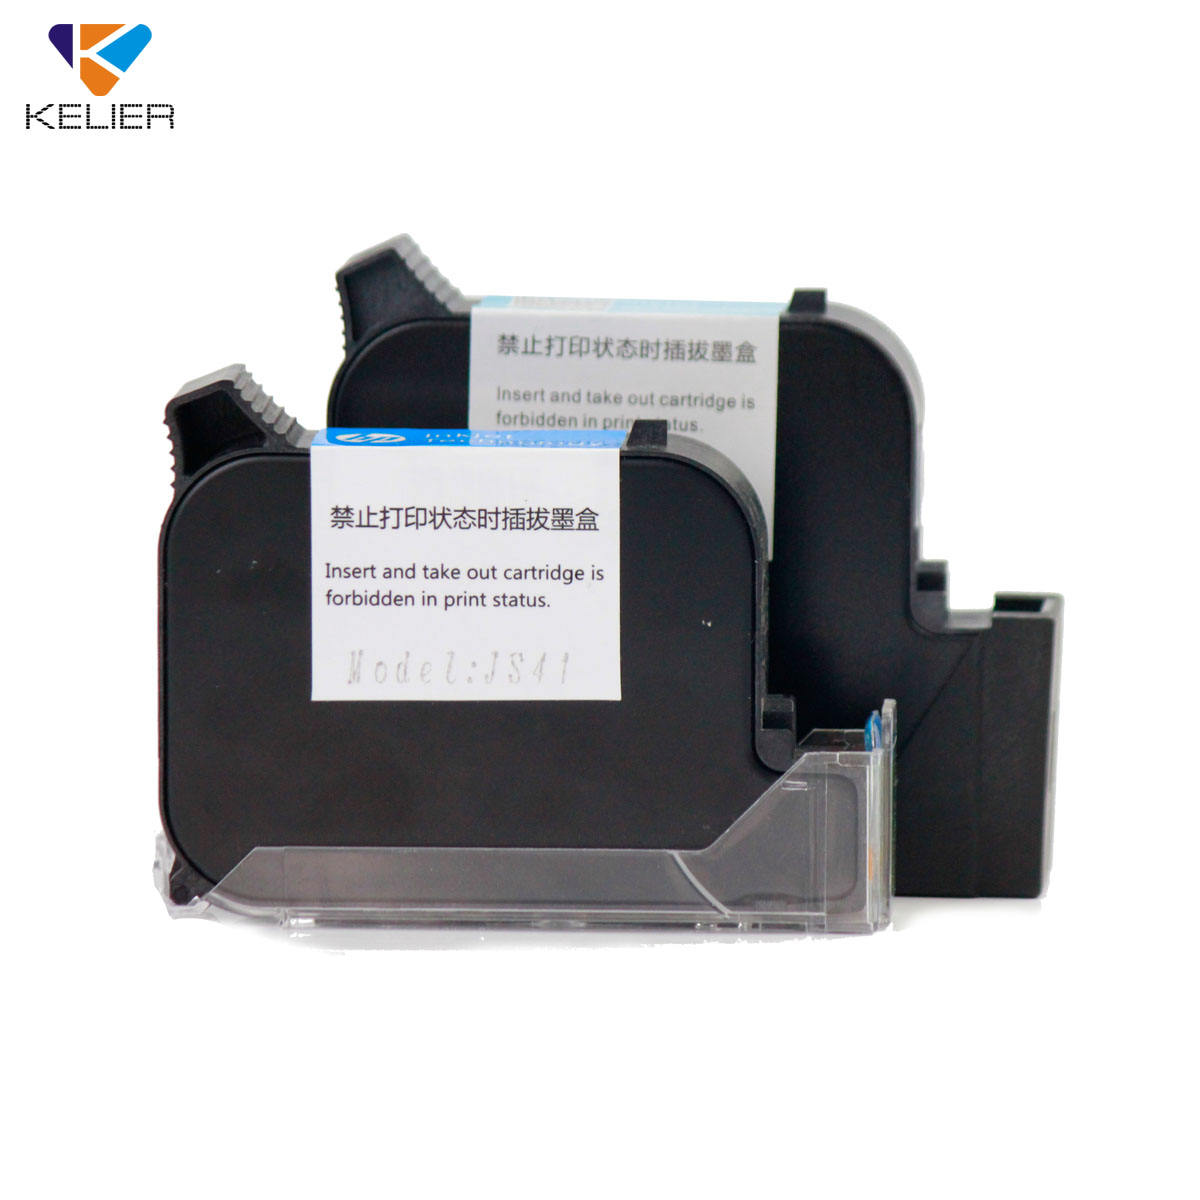 Ink Cartridge Black Dry Ink Cartridge KELIER H3 KX1